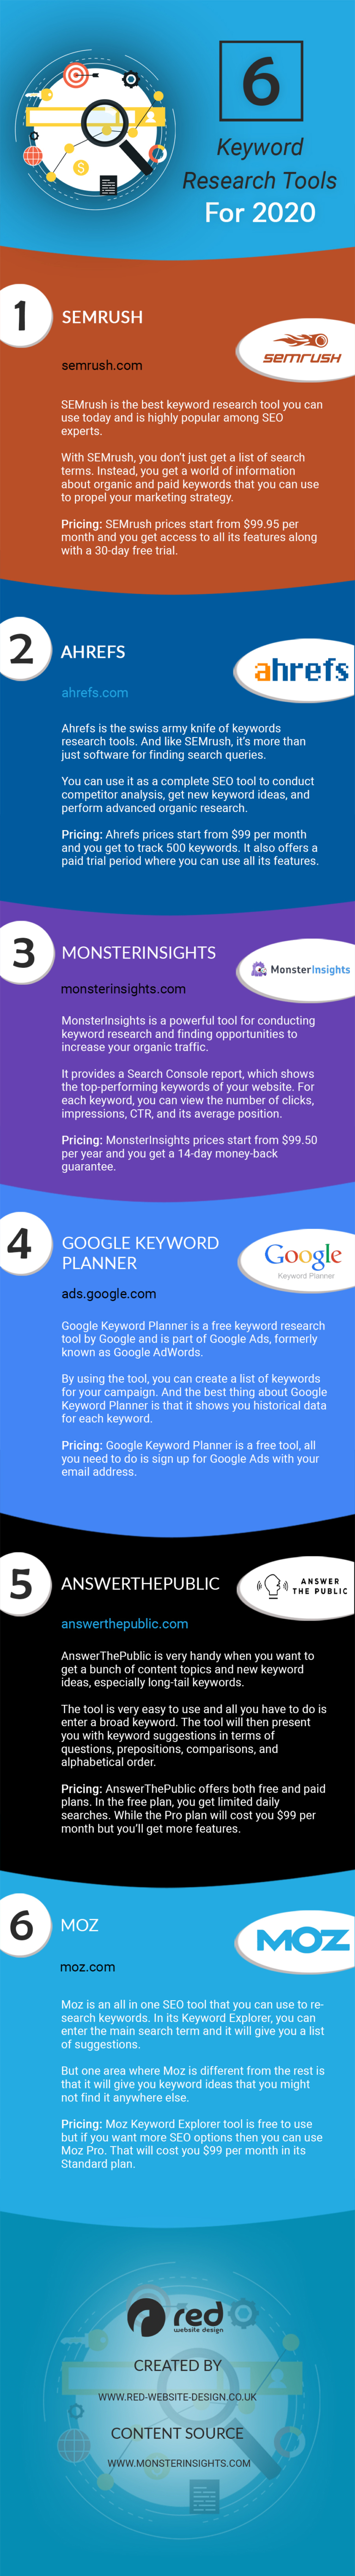 Infographic lists six keyword research tools